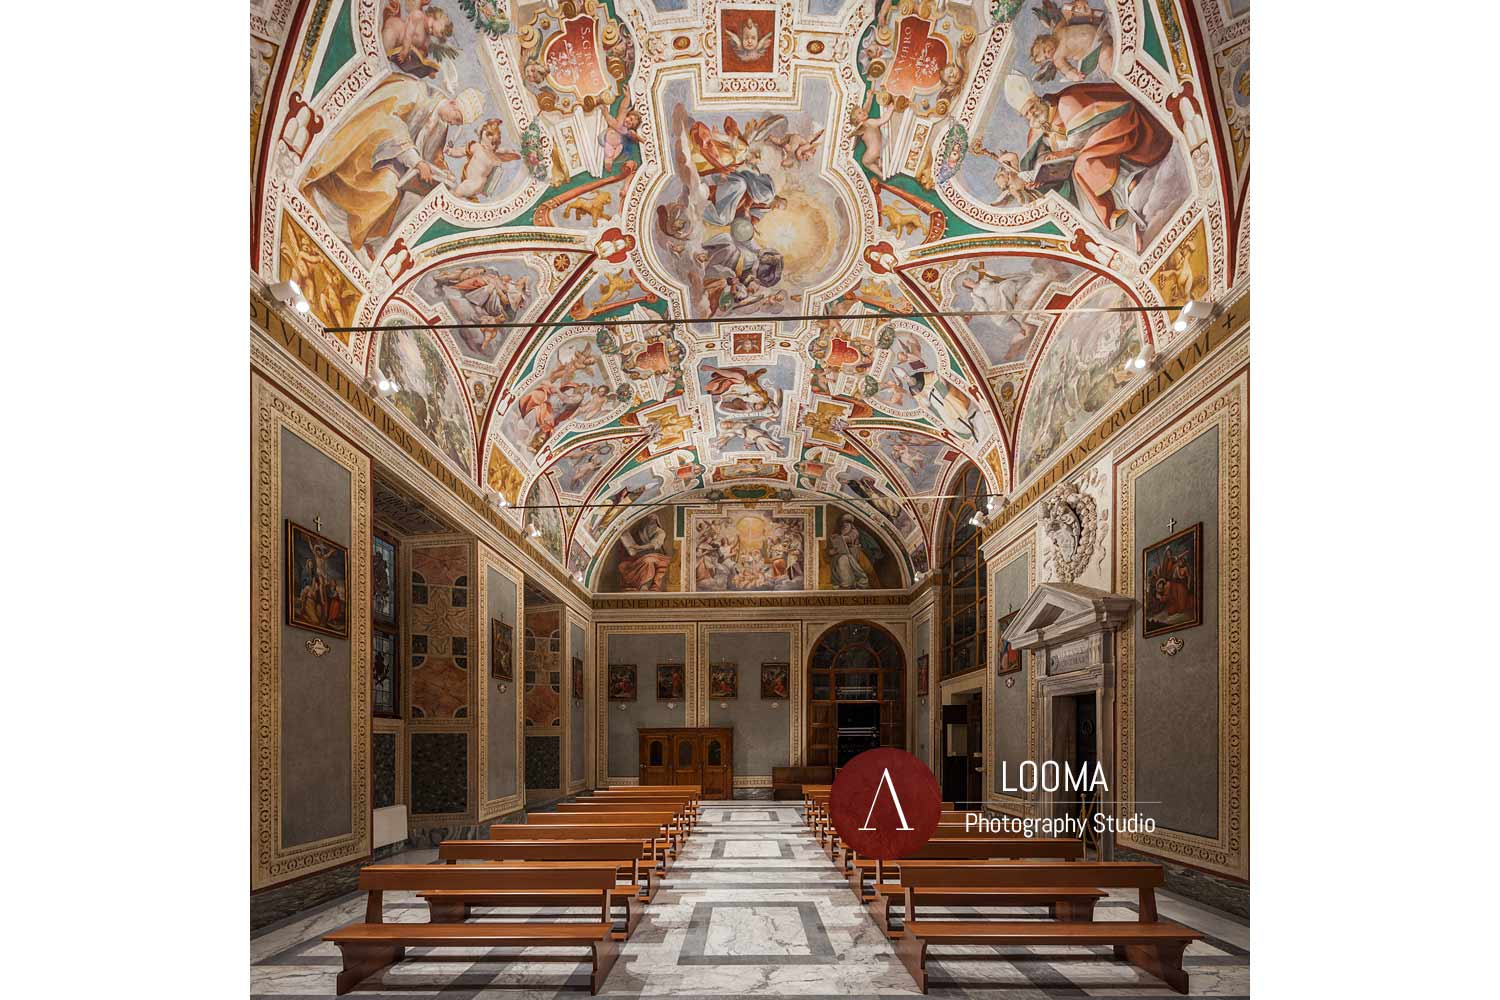 The nave of San Lorenzo in Palatio church. The frescoed ceiling vault